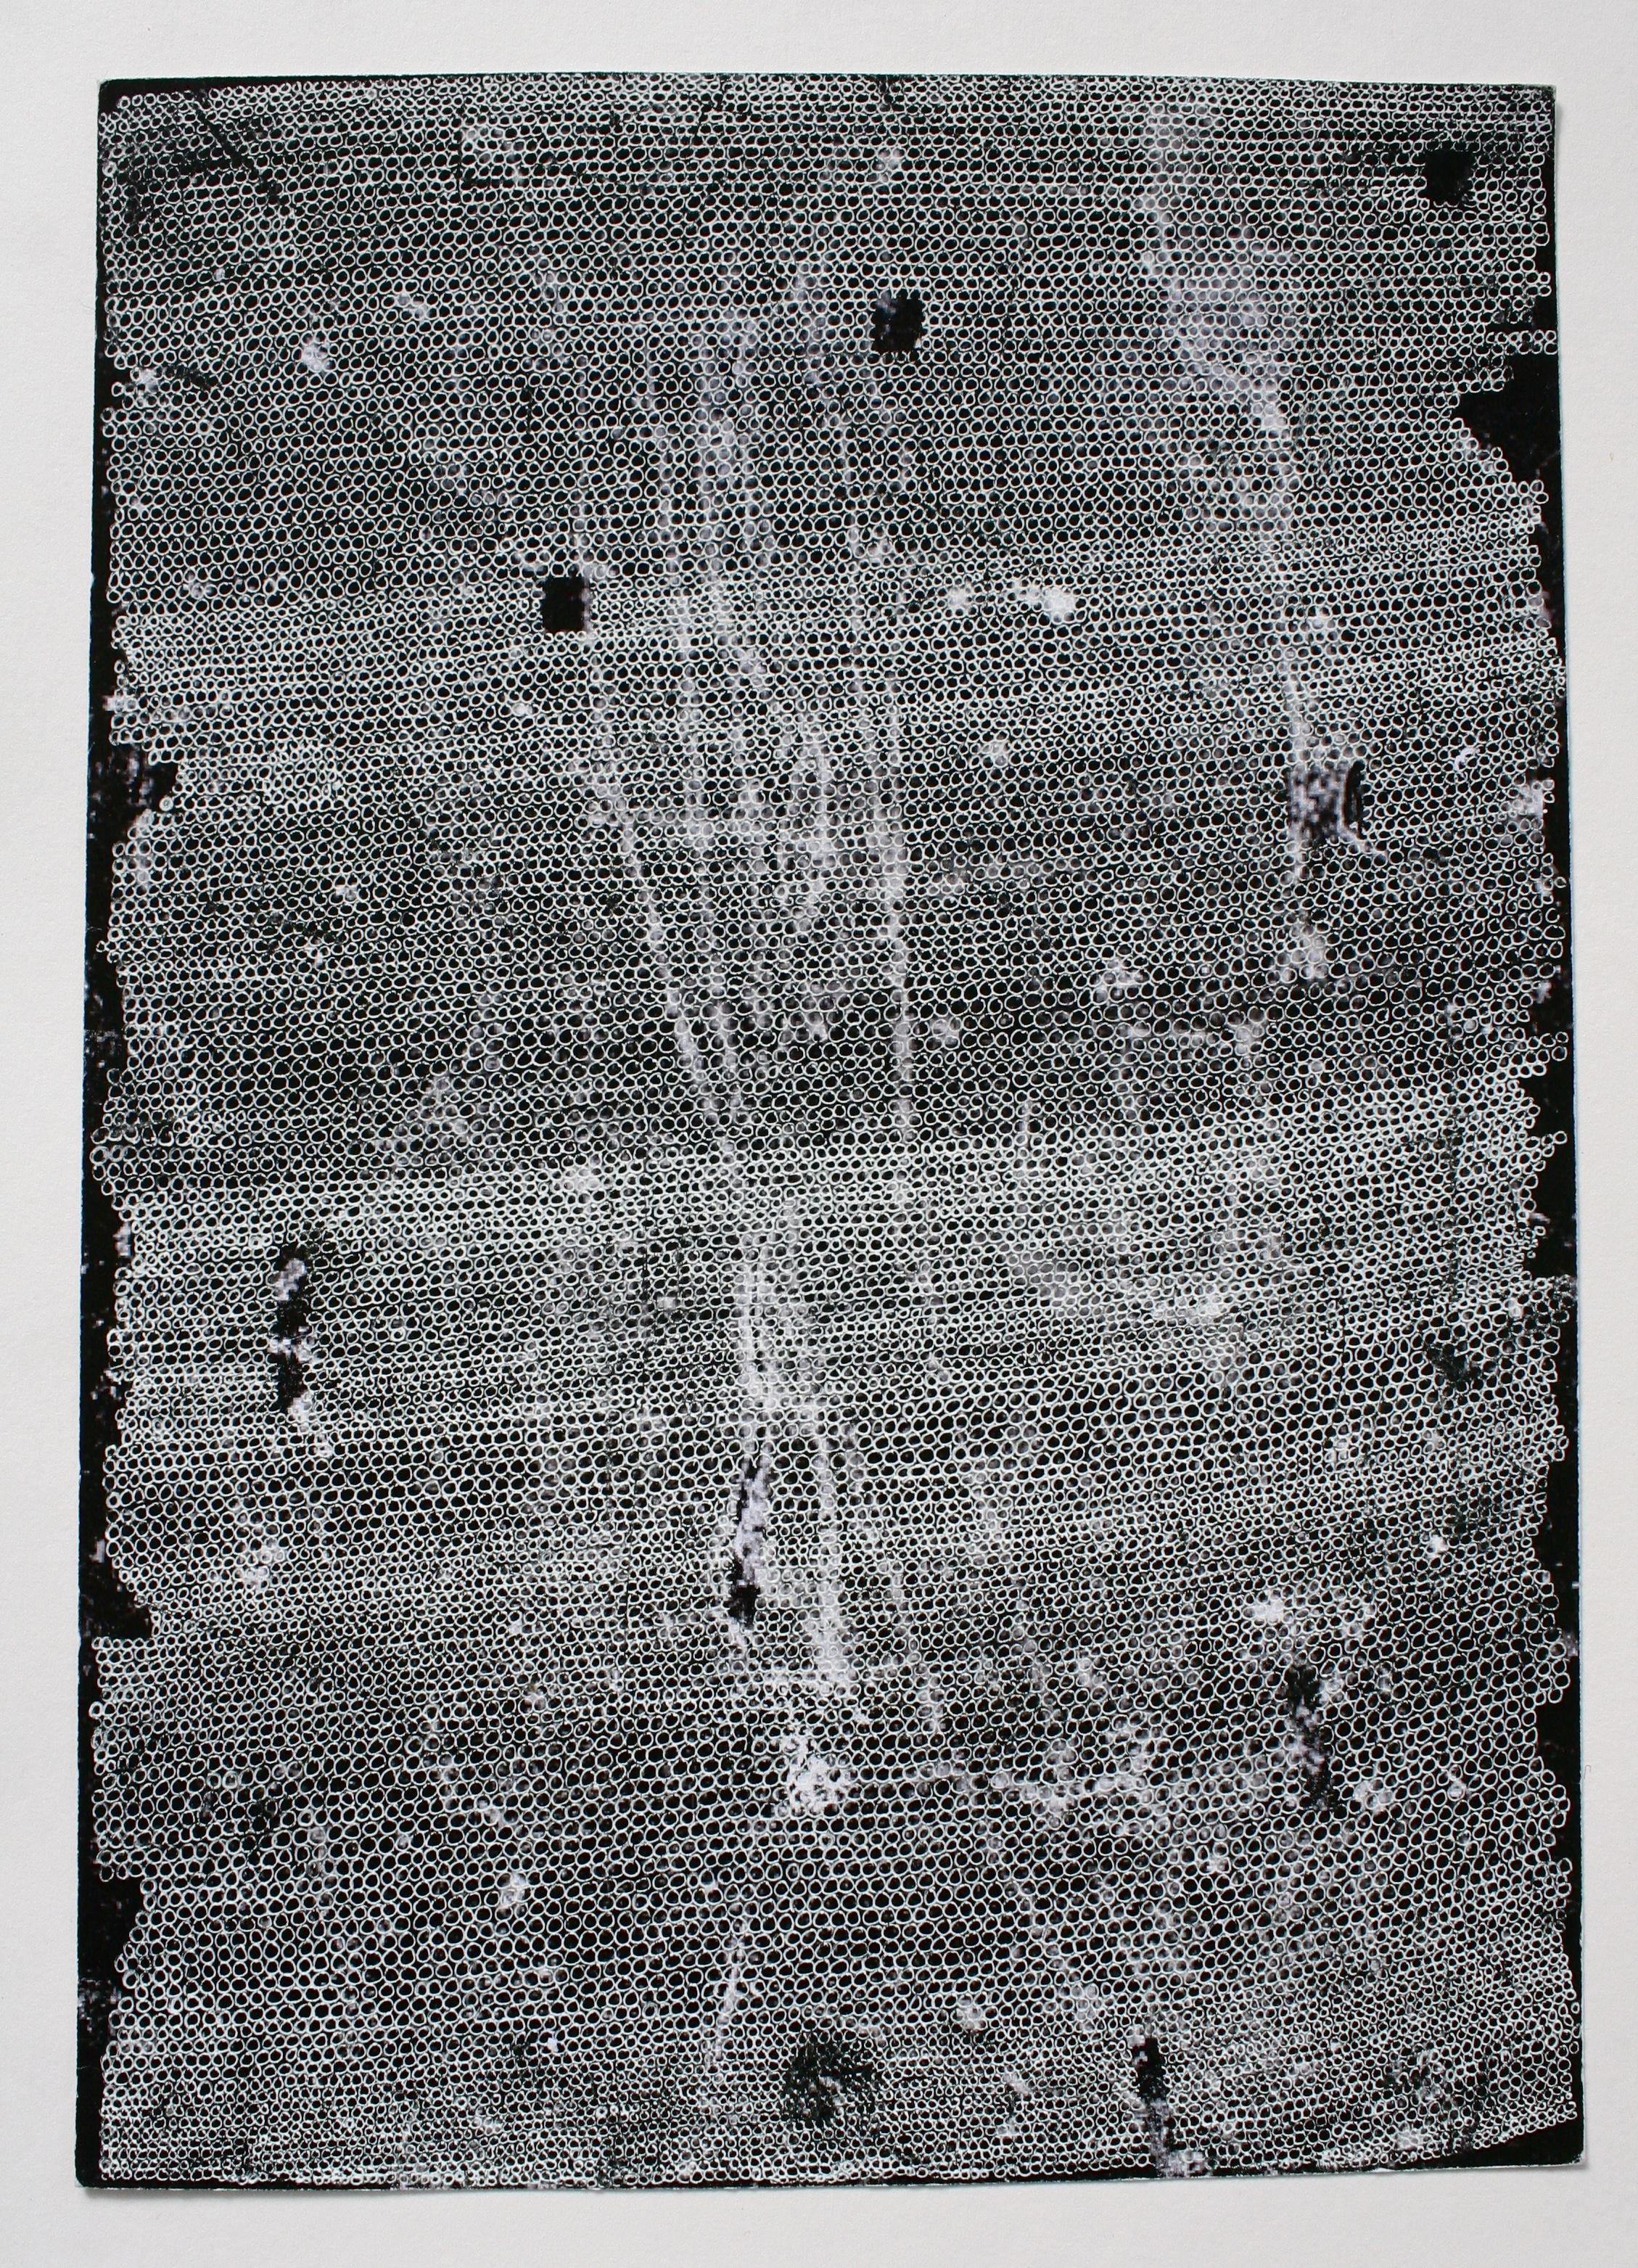 2017, ink on photograph, 20 x 30cm